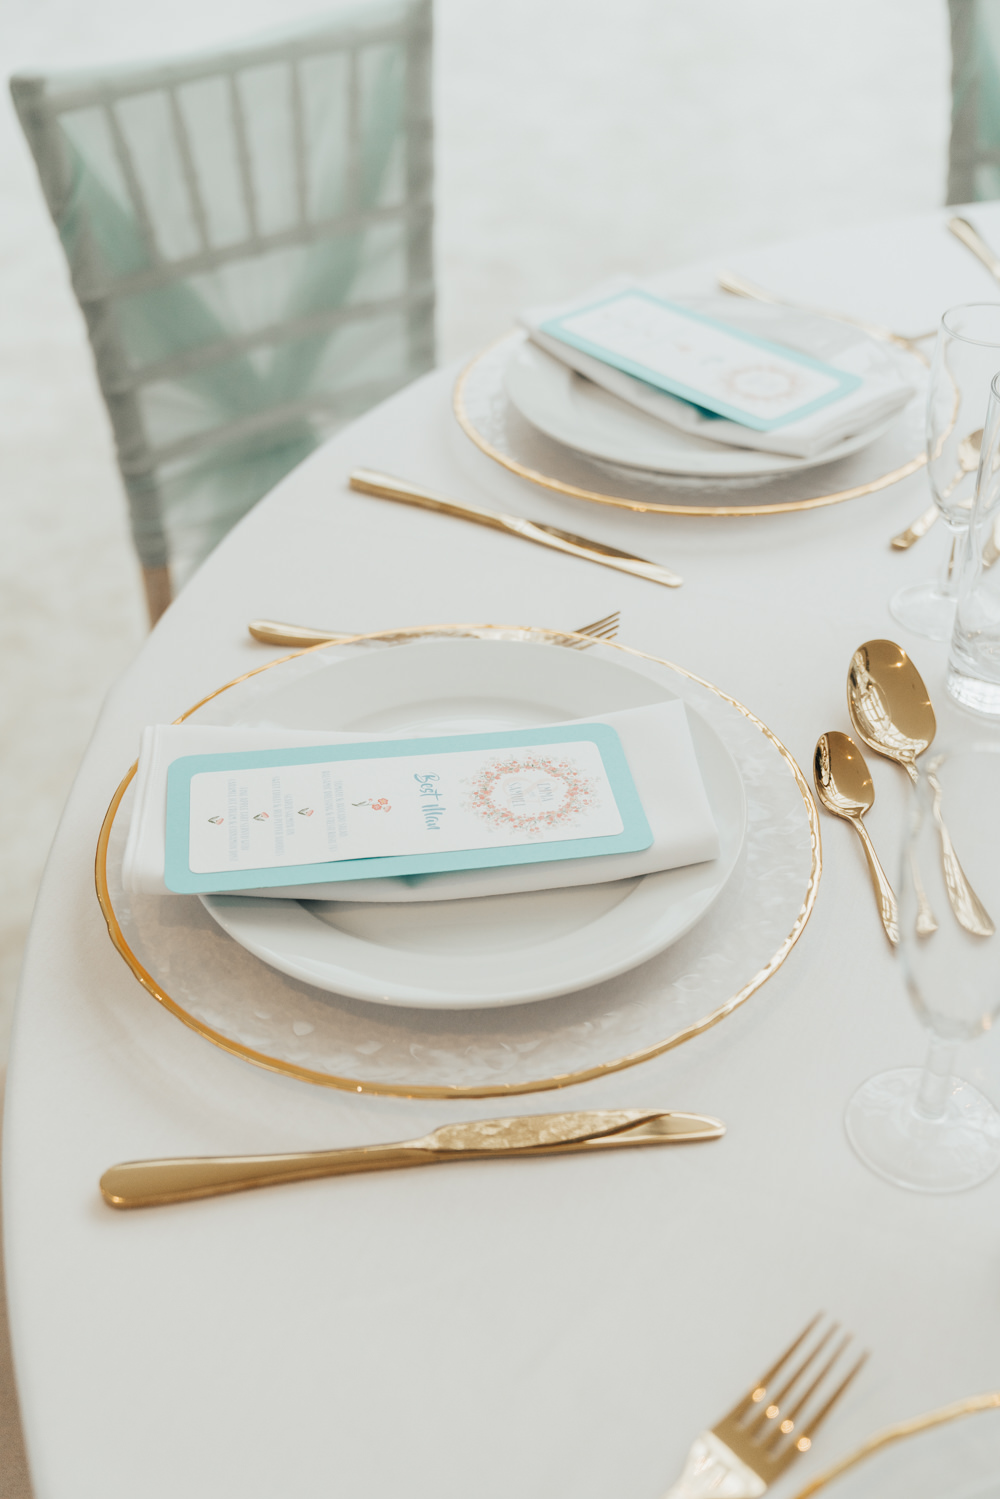 Table Setting Plates Stationery Gold Cutlery Hoop Wedding Ideas Rebecca Carpenter Photography